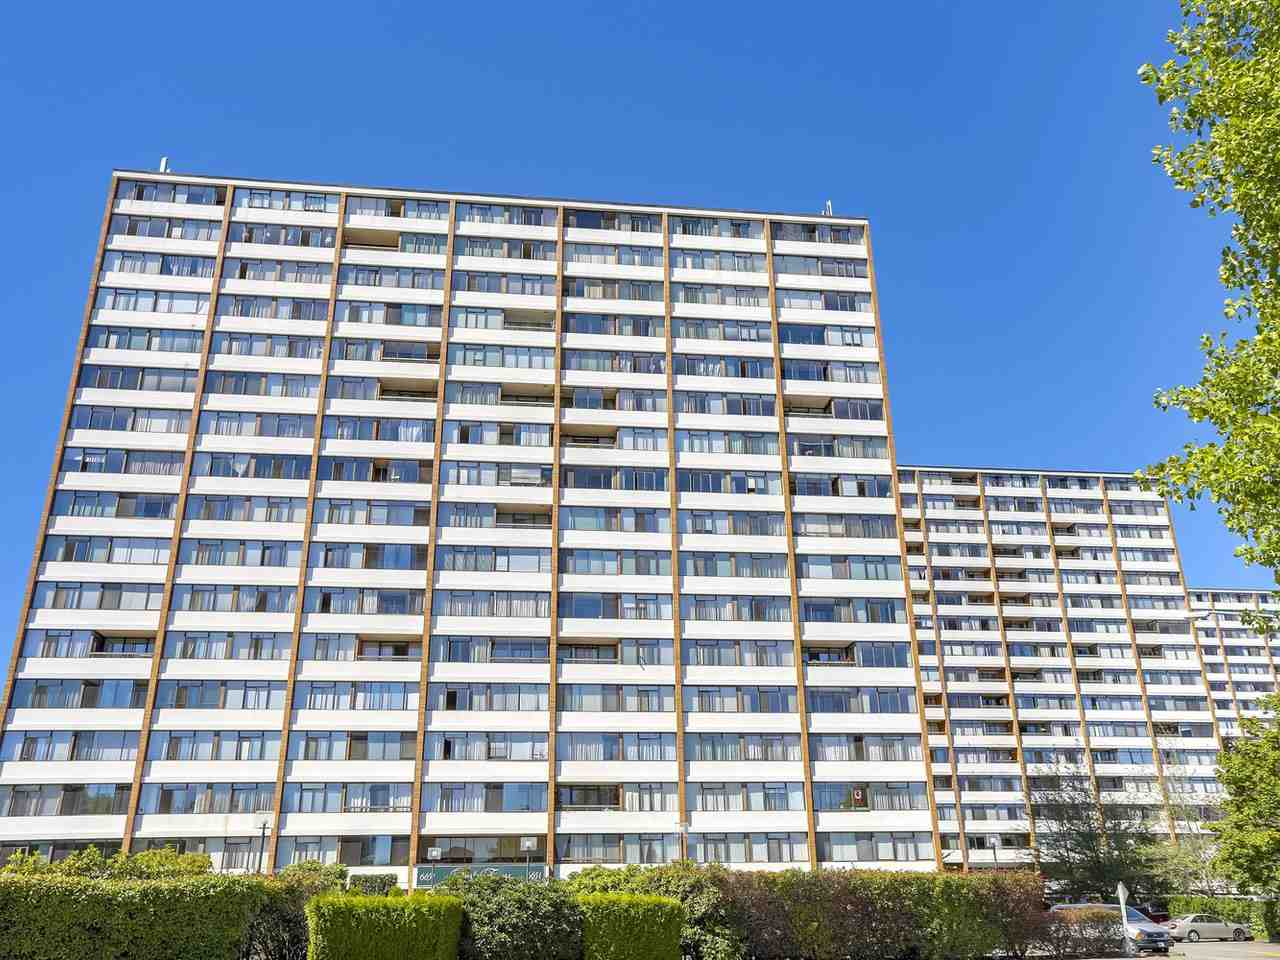 "Main Photo: 1608 6651 MINORU Boulevard in Richmond: Brighouse Condo for sale in ""REGENCY PARK TOWERS"" : MLS® # R2209522"